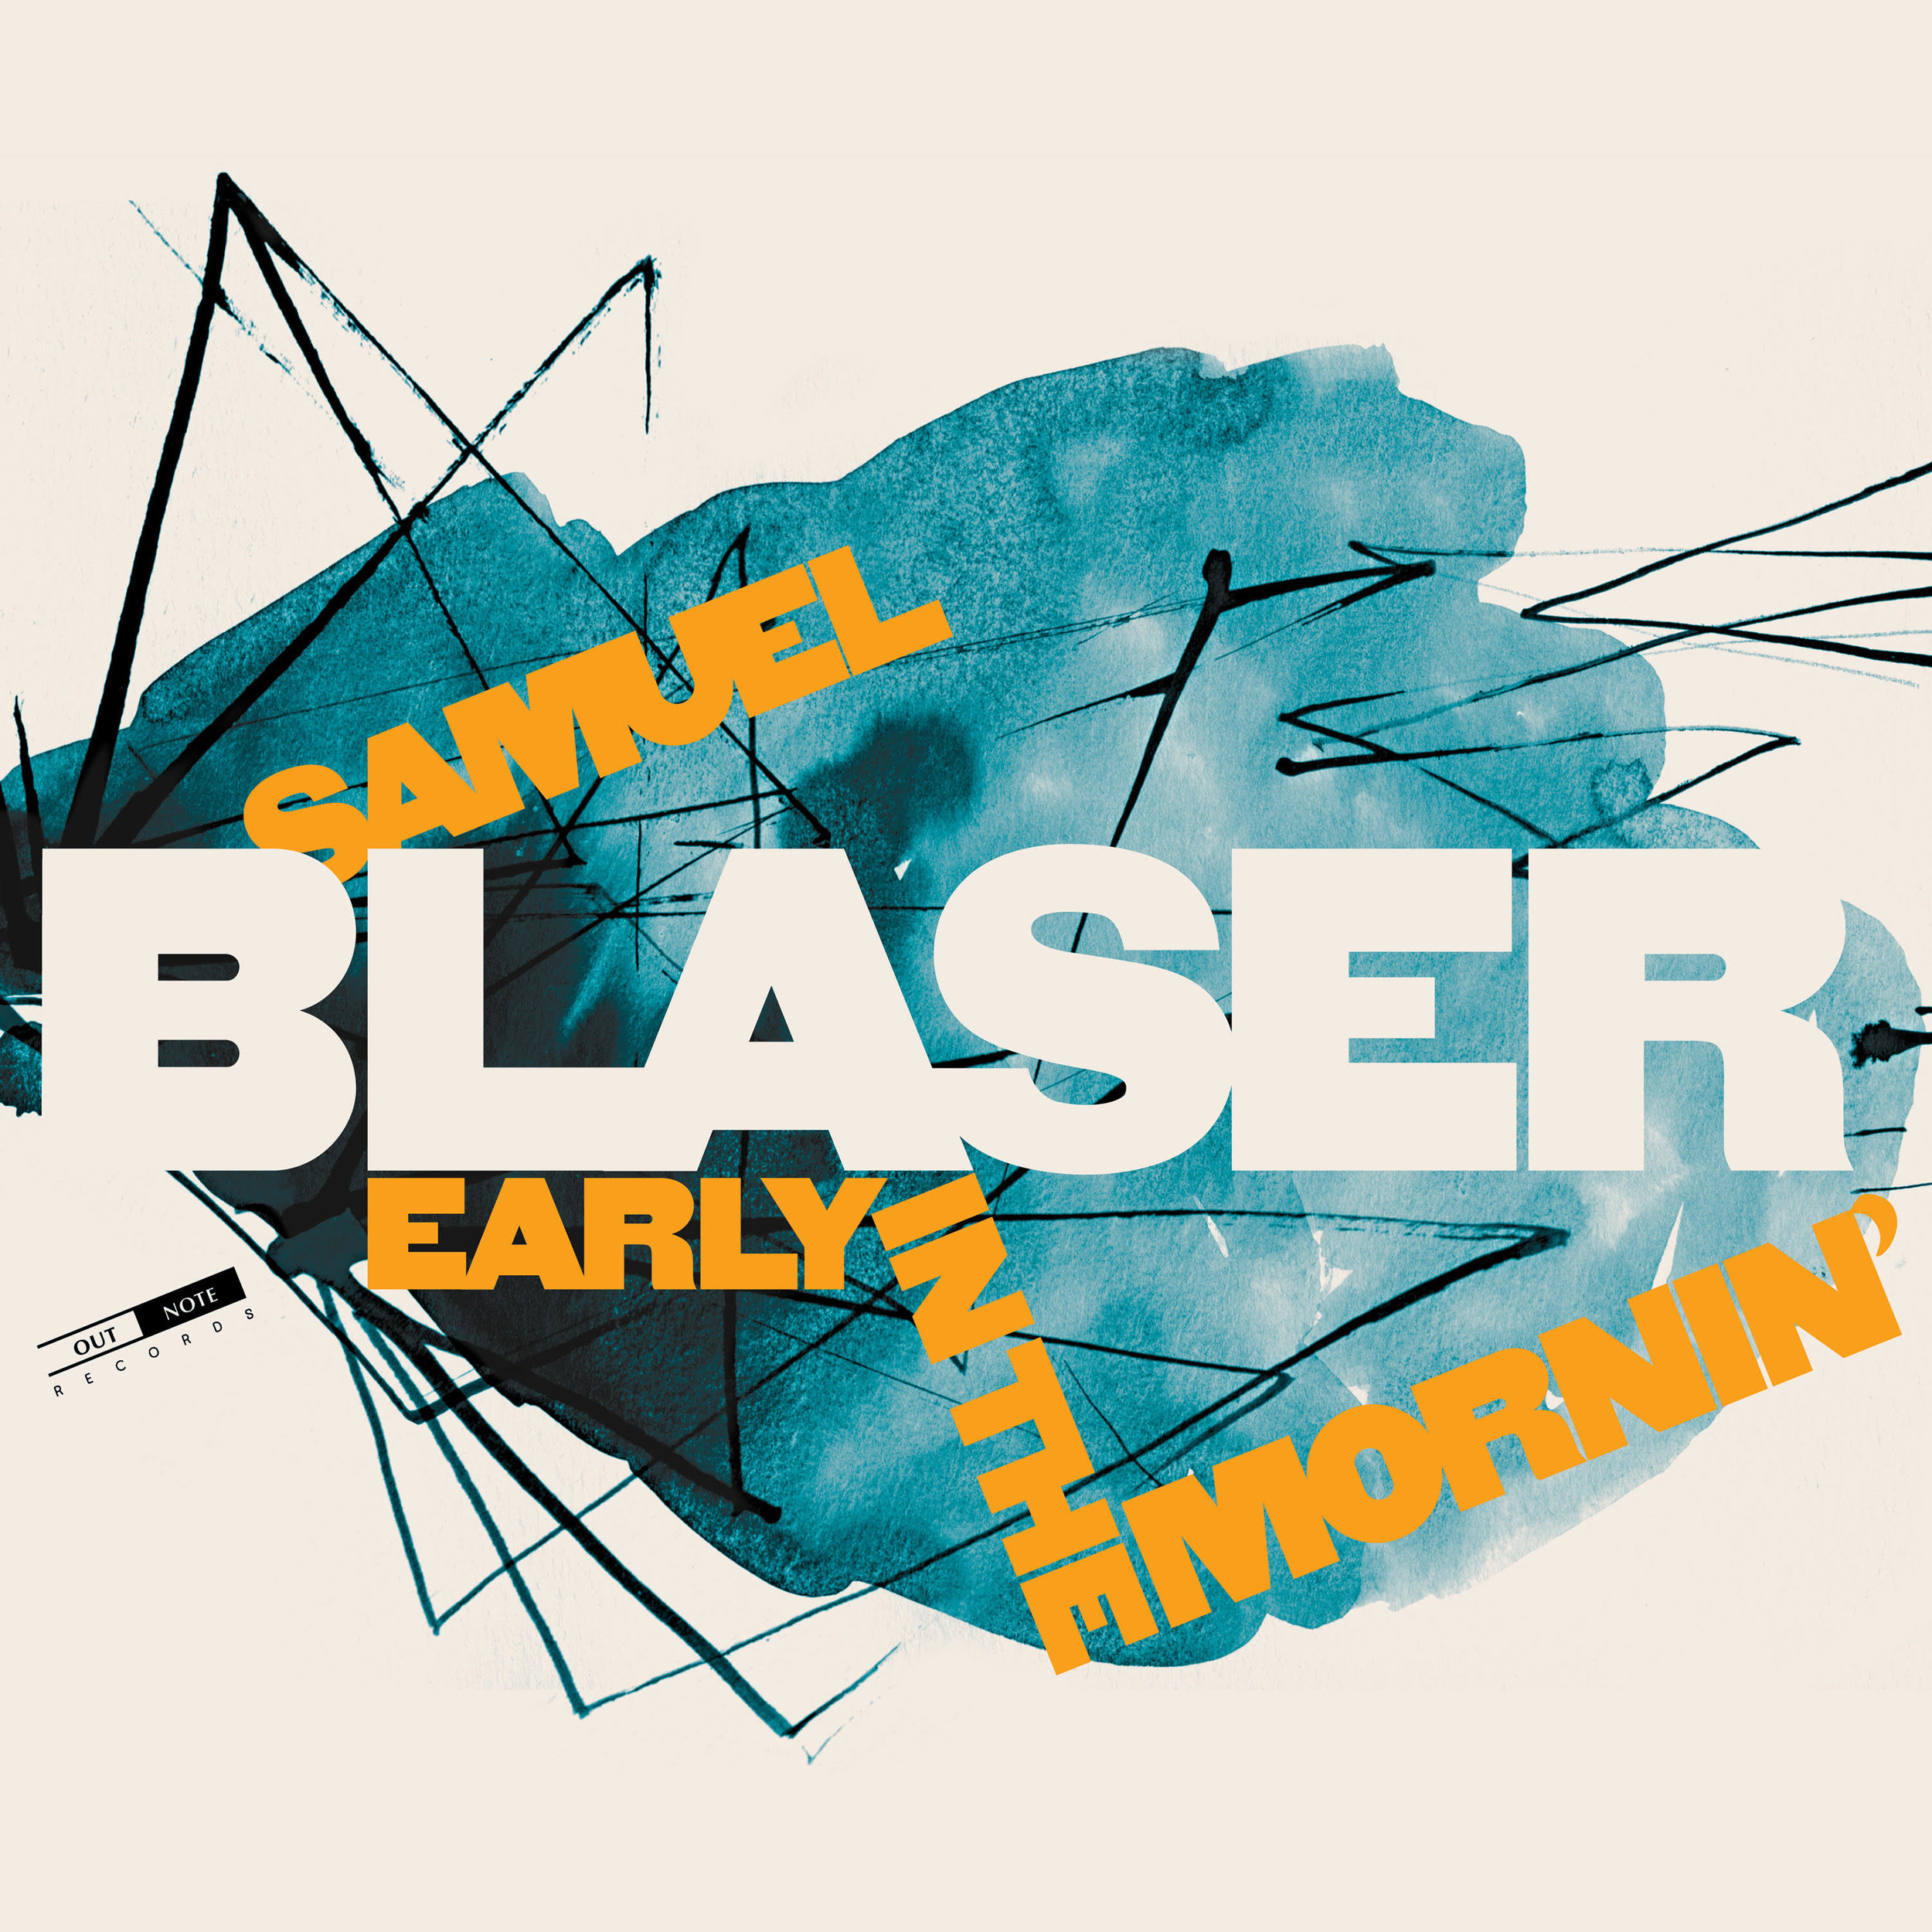 SAMUEL BLASER   EARLY IN THE MORNIN (2018)  BUY CD SIGNED:    €25.00